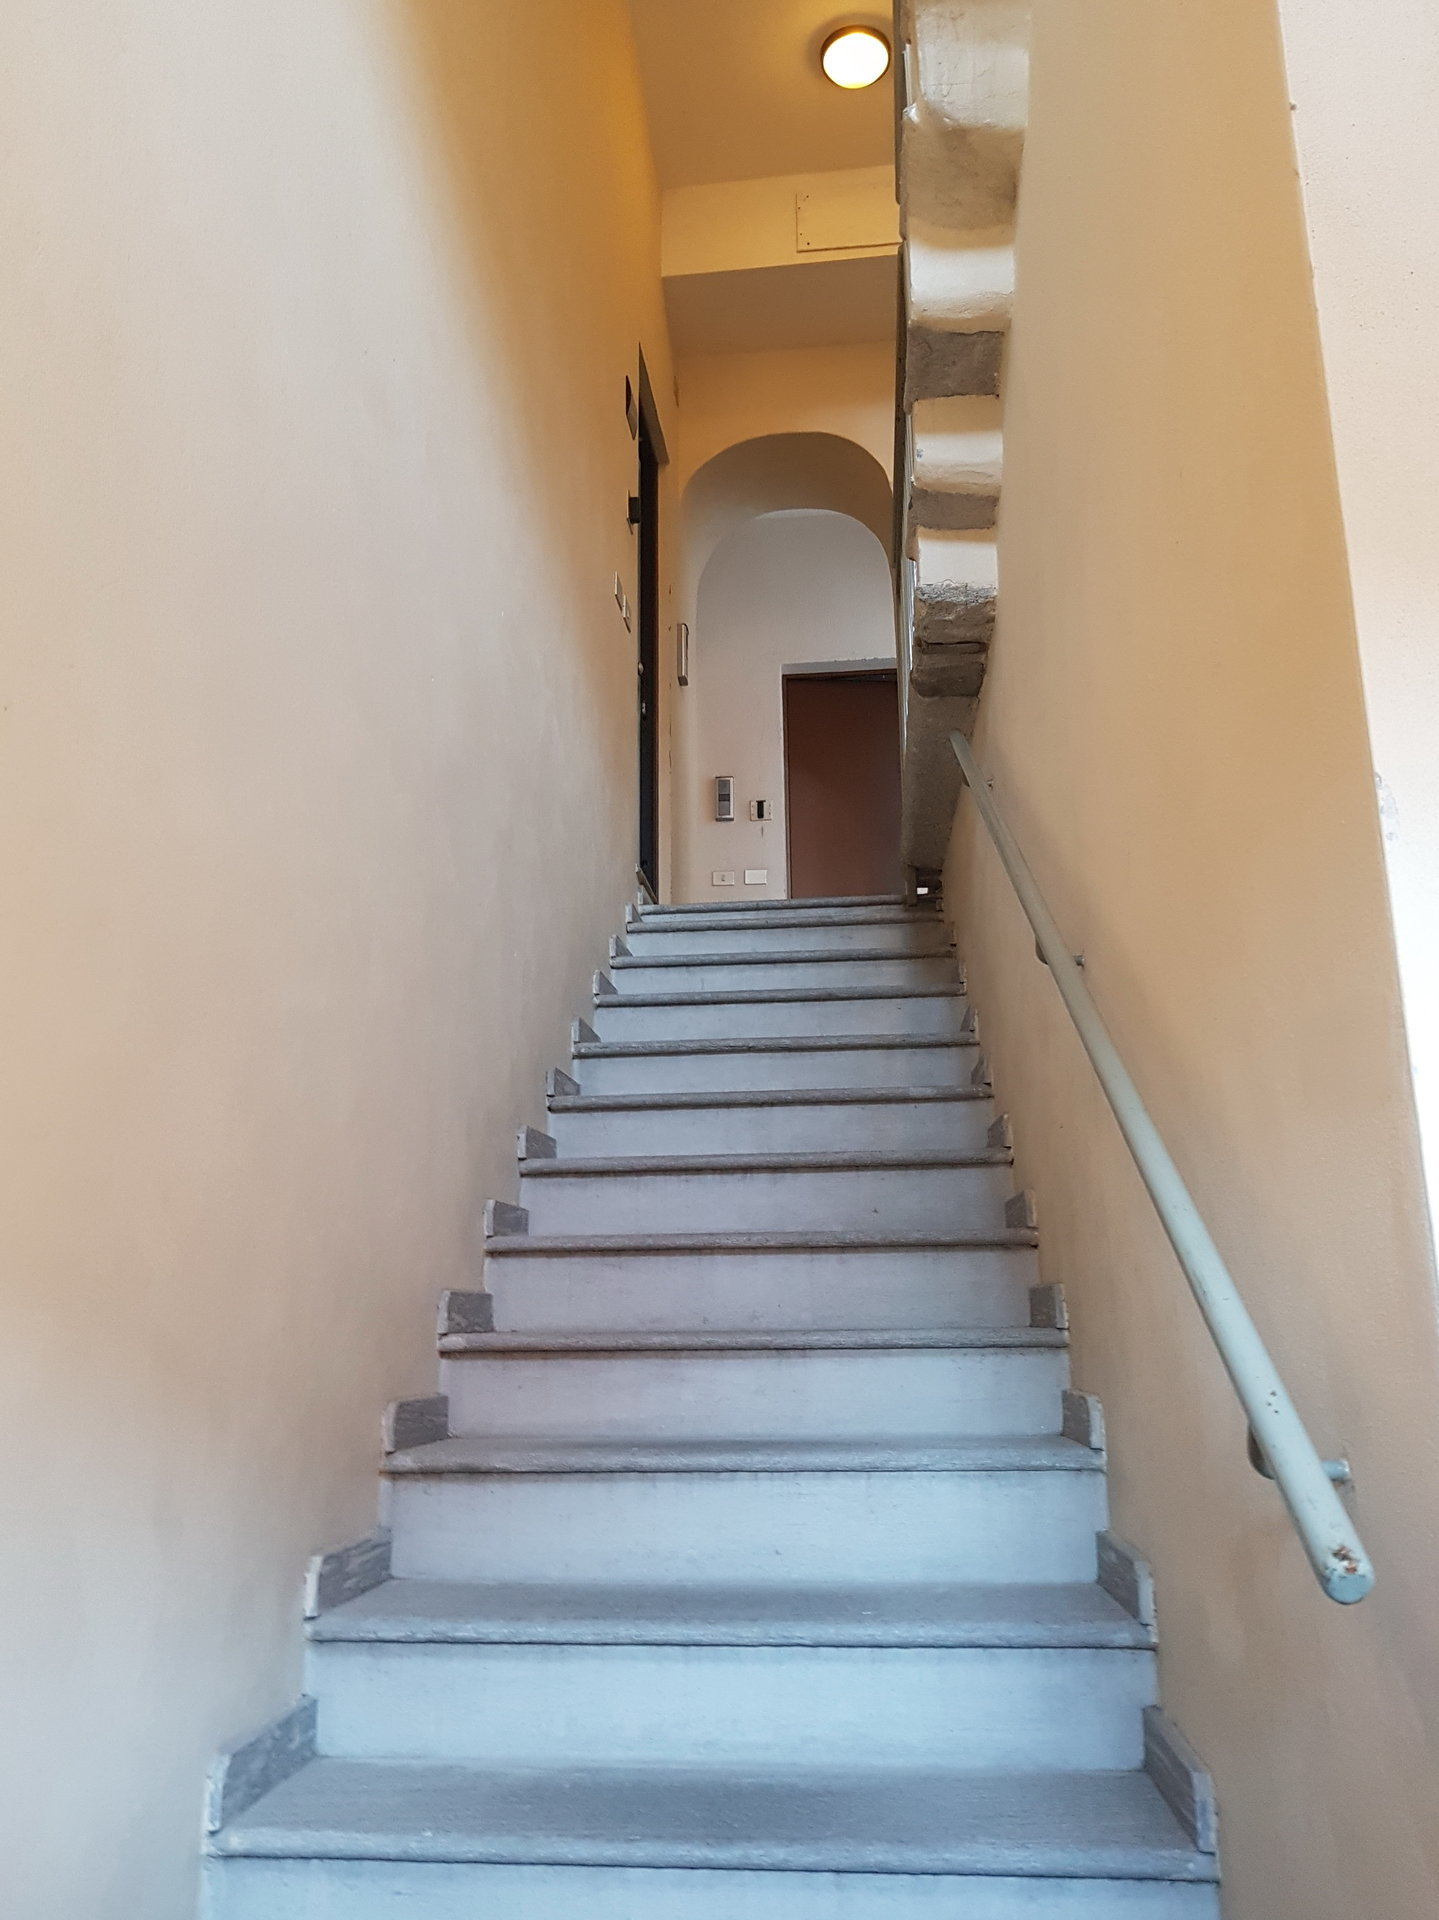 Sale renovated apartment in Verbania - stairs